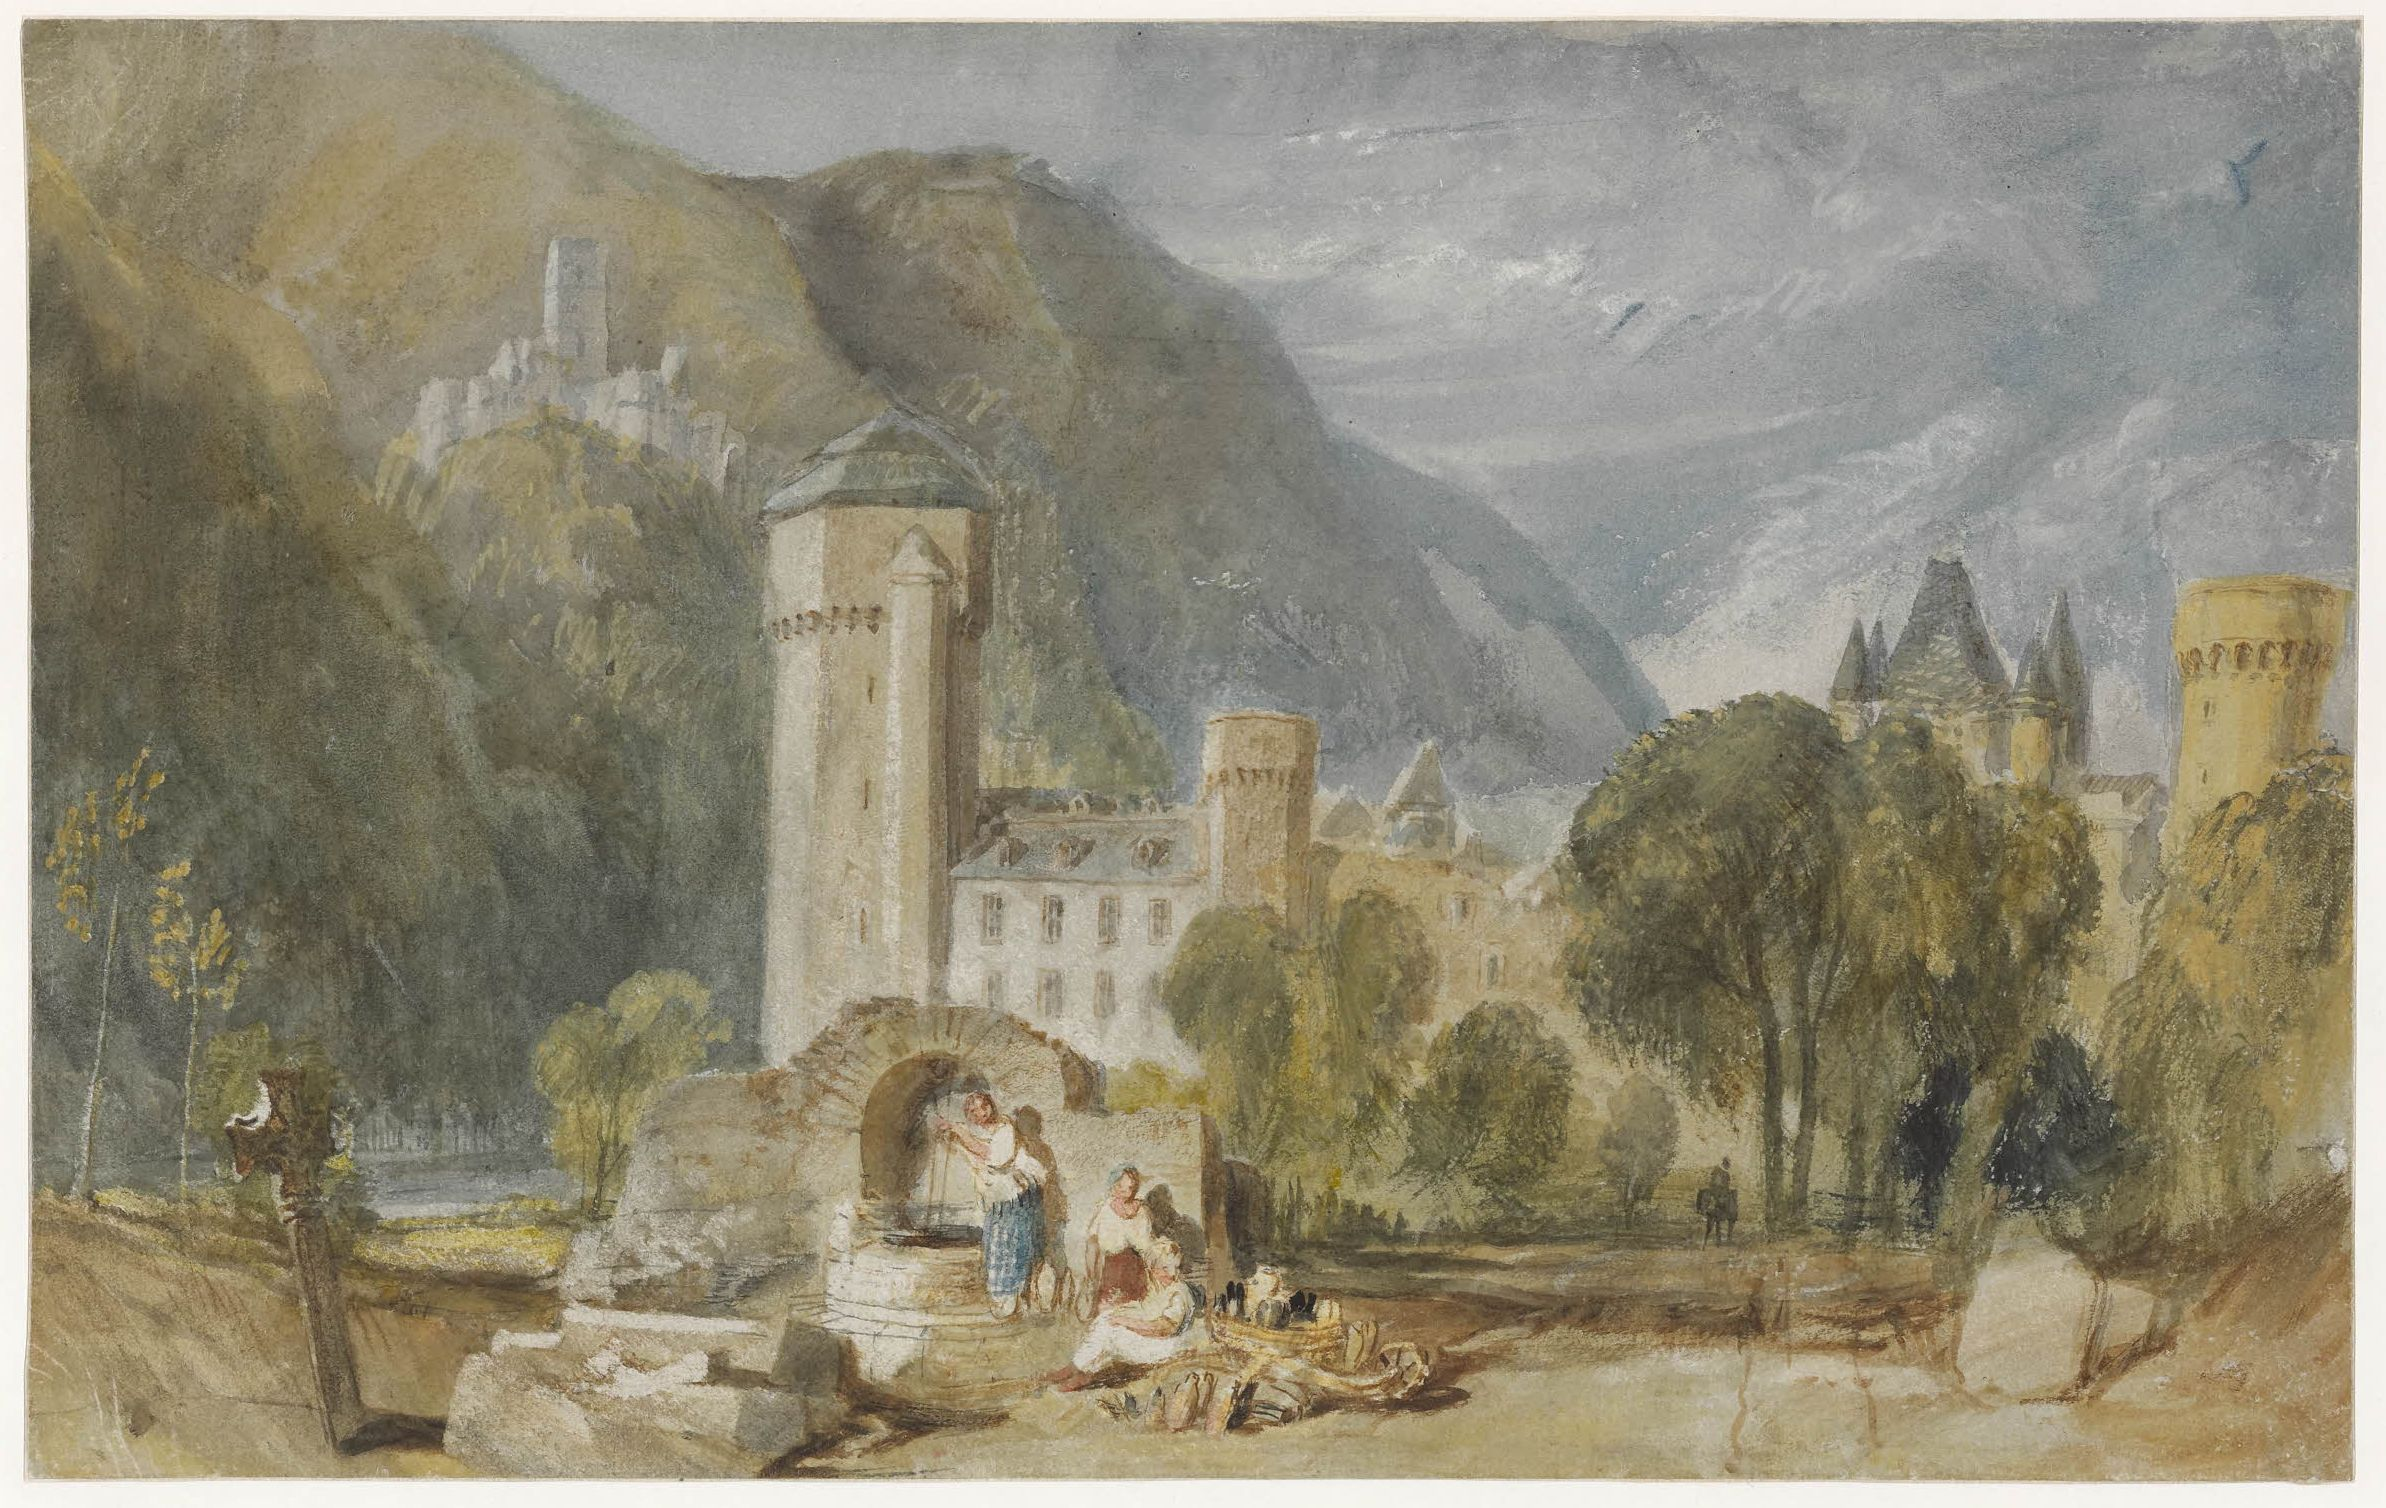 Joseph Mallord William Turner (1775-1851), Oberlahnstein, 1817, watercolour and bodycolour on white paper prepared with grey wash, 19.8 x 31.6 cm